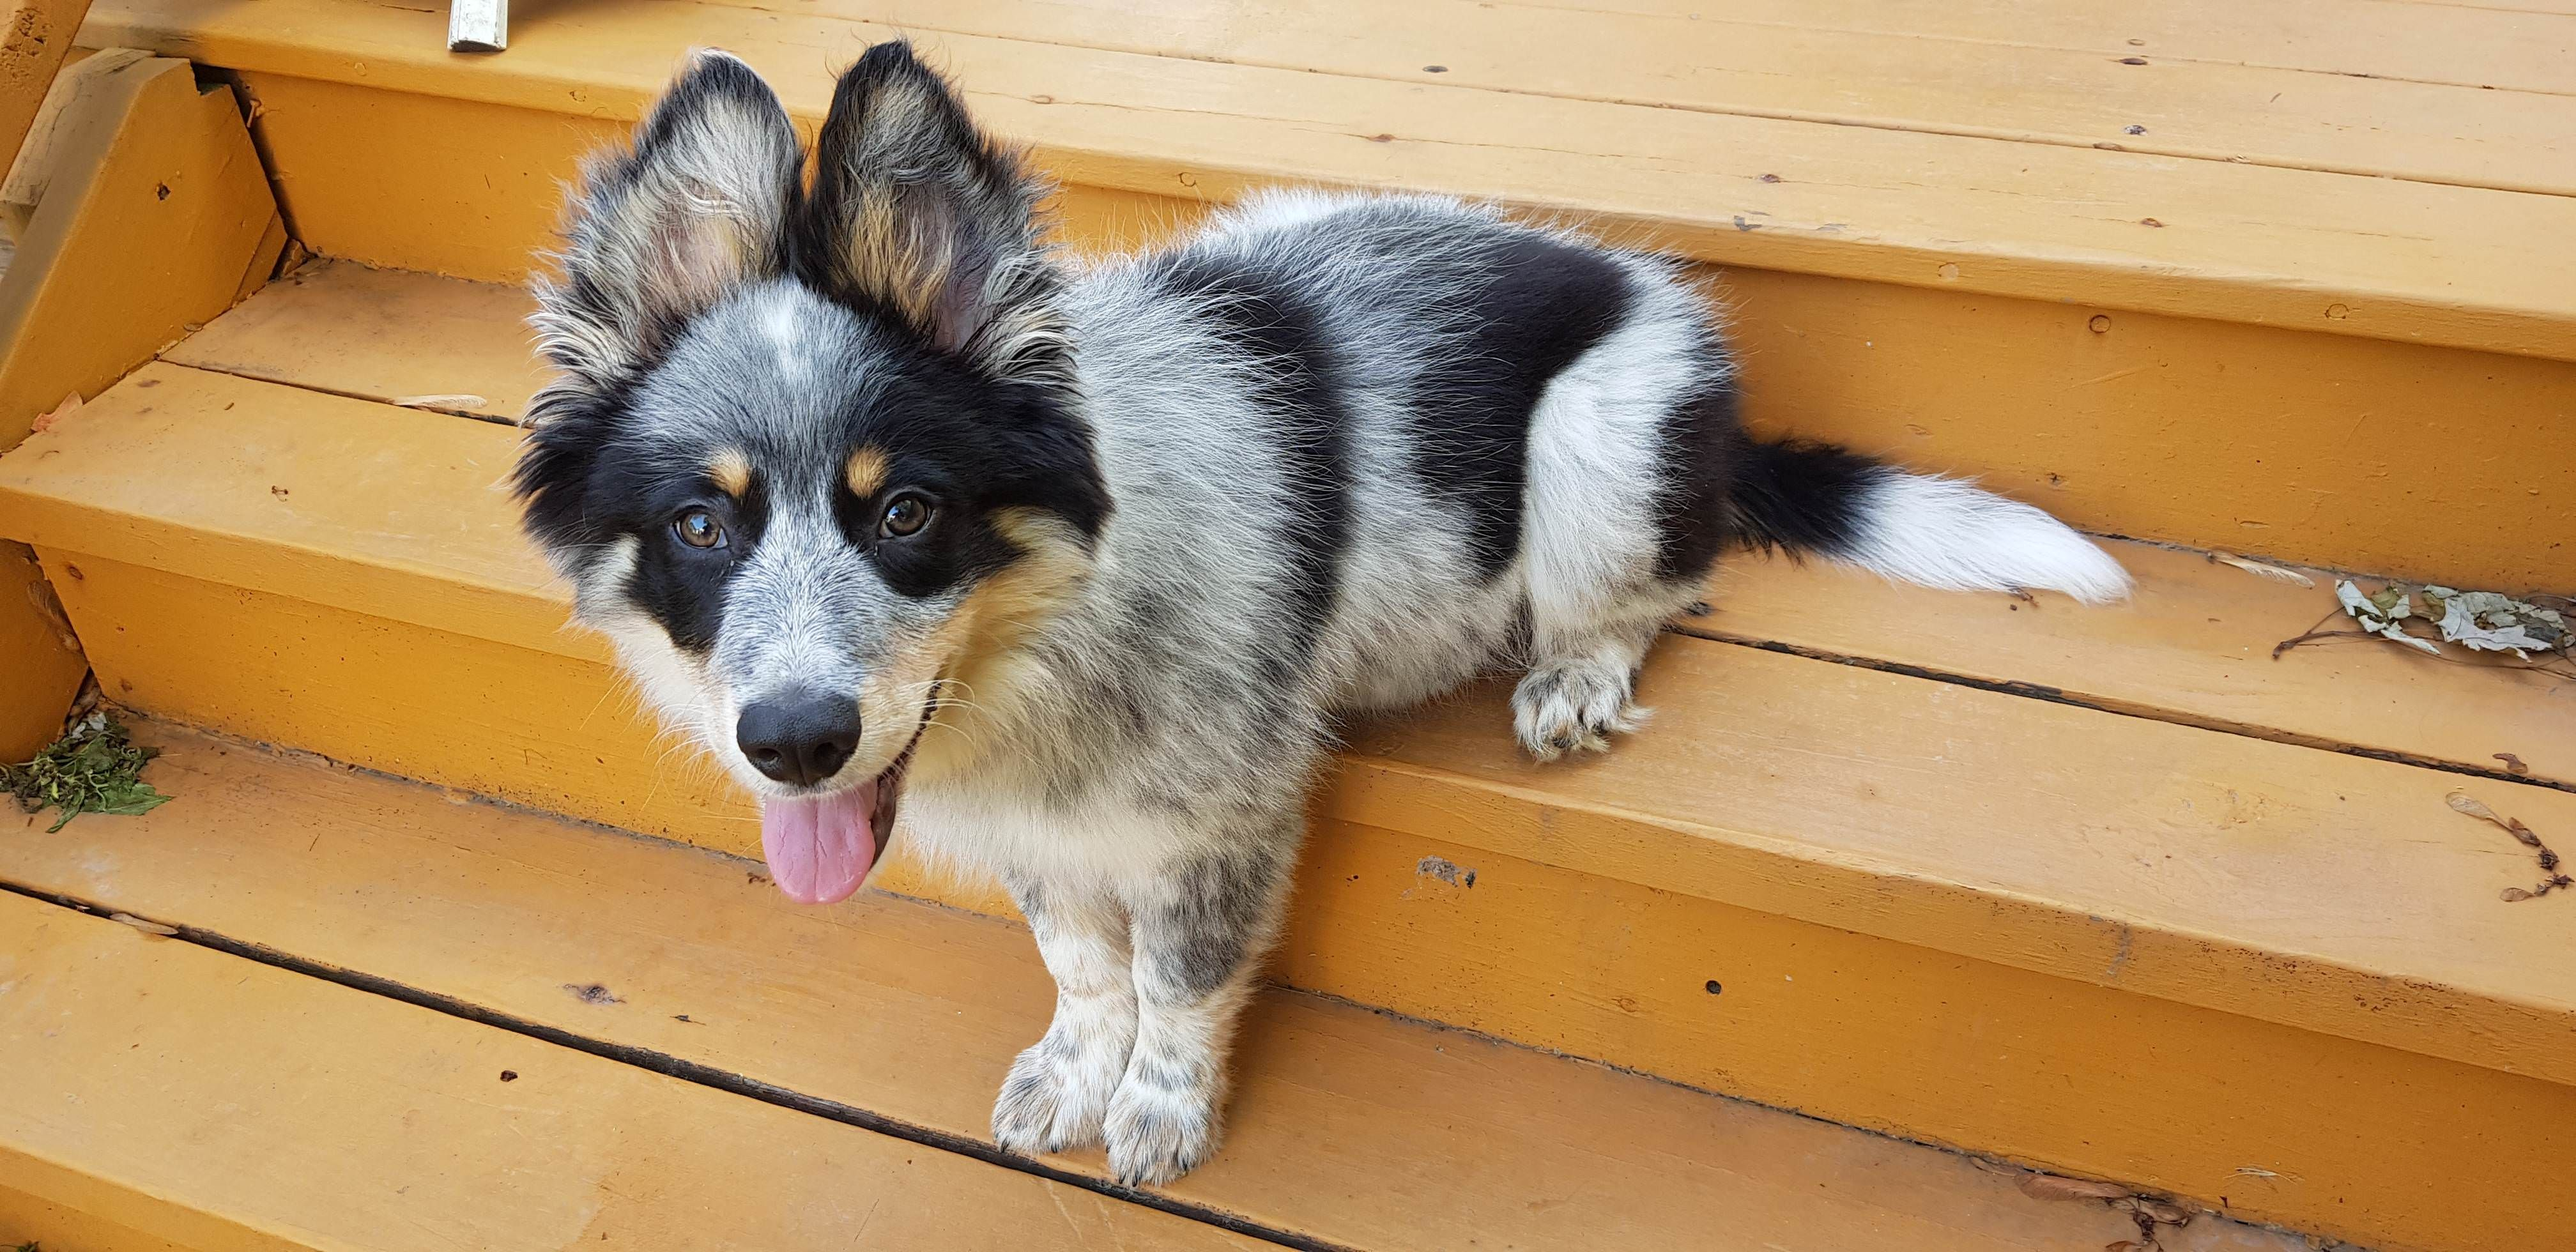 Over The Past Couple Days I Ve Seen Some Boarder Collies